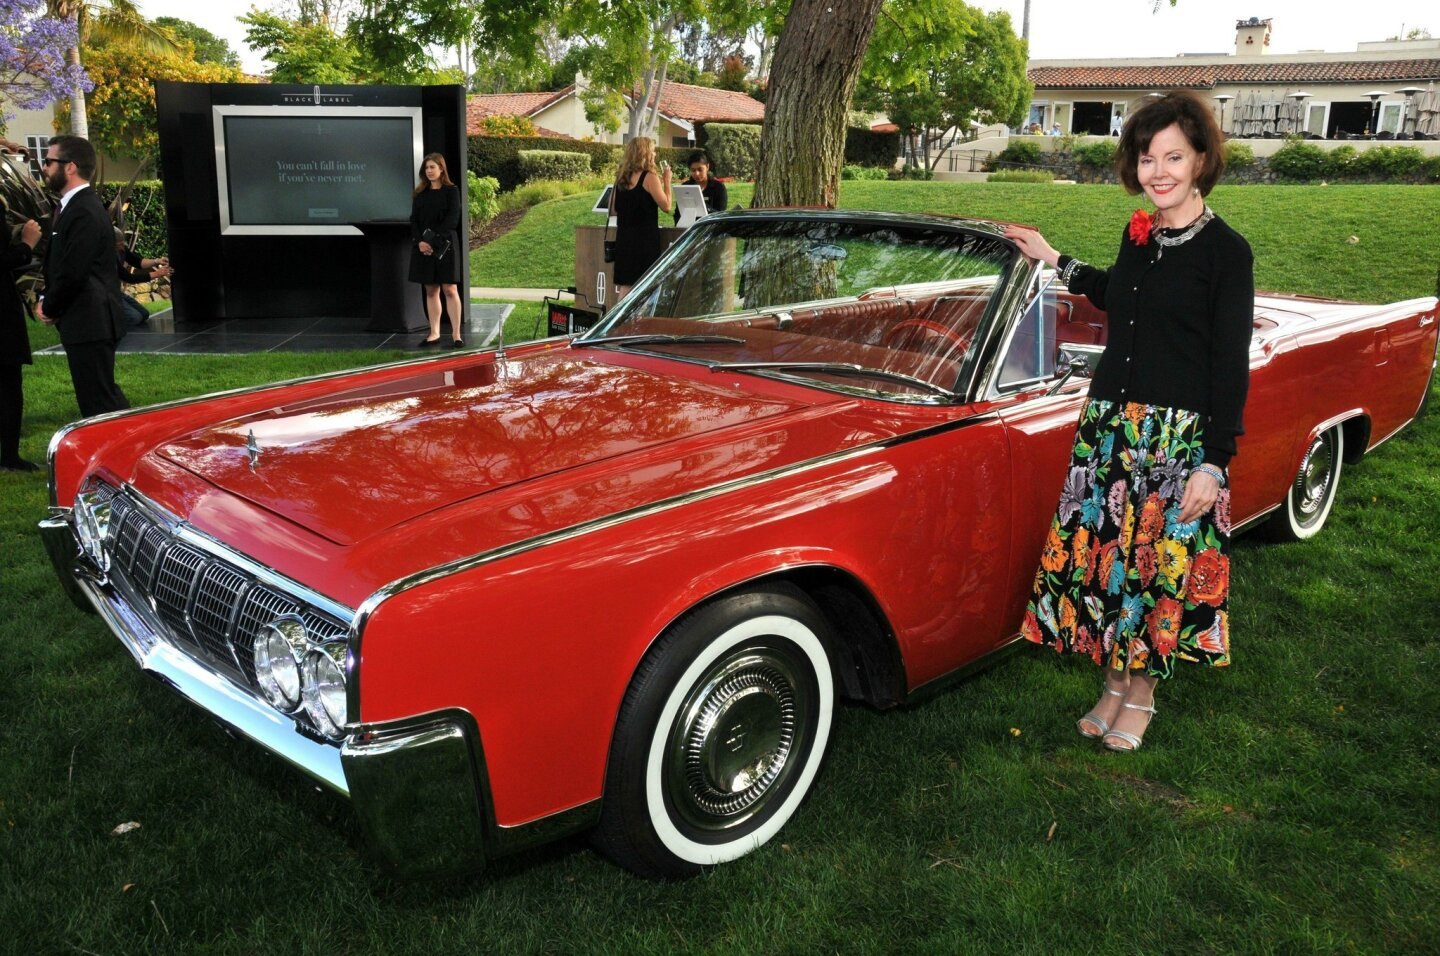 Laurel McCrink with Ed Witt's restored 1964 Lincoln Continental